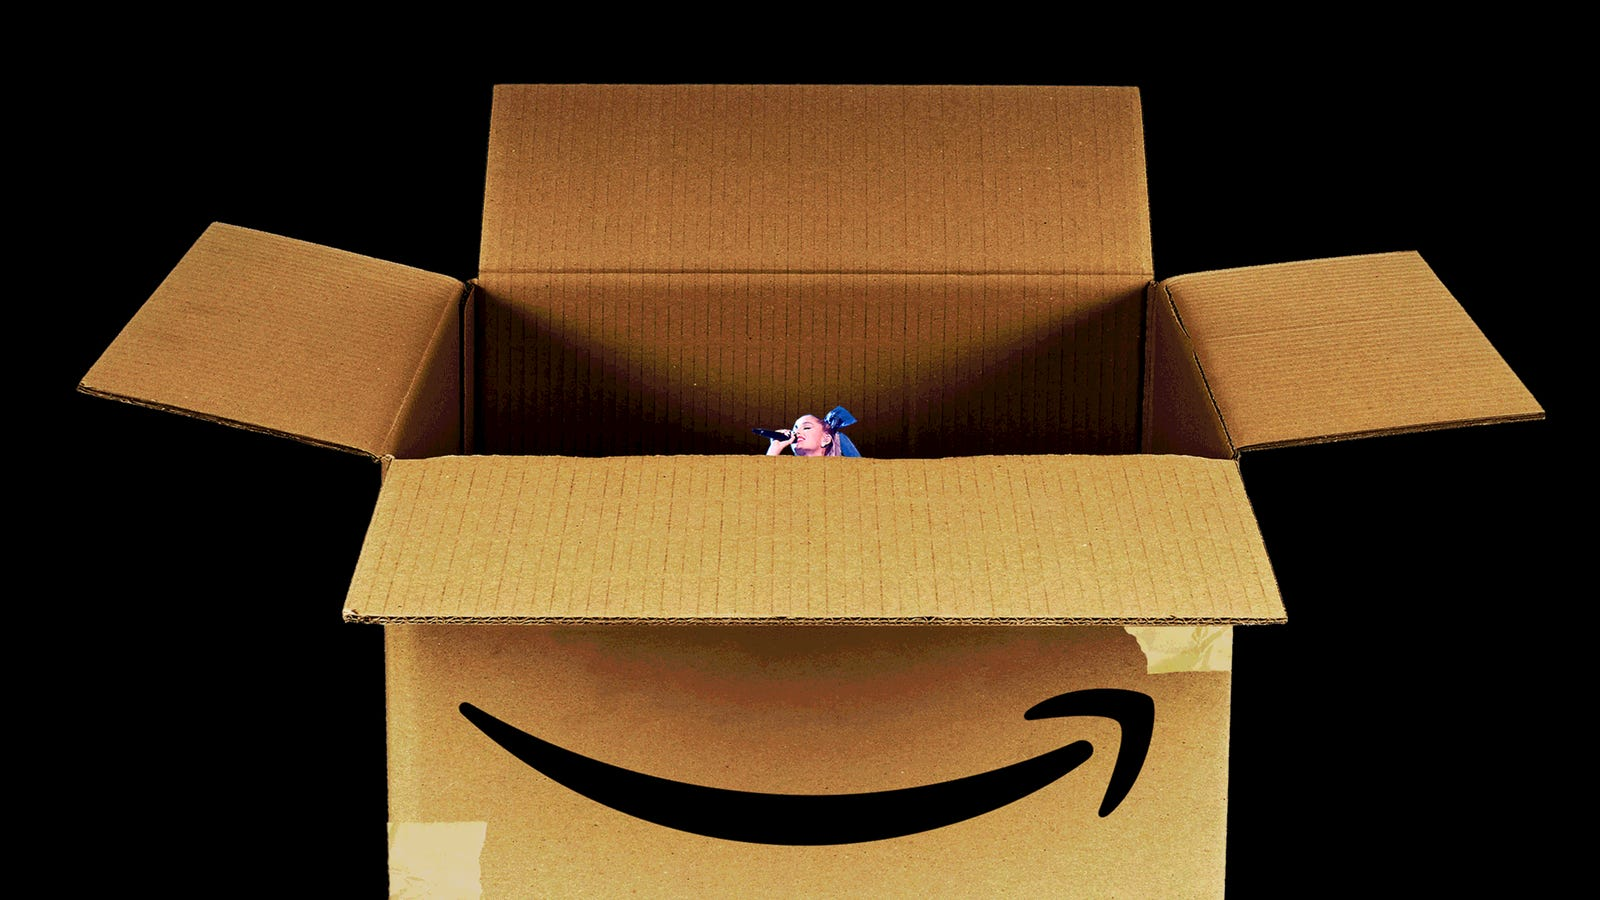 My Search for the Spirit of Prime Day at an Ariana Grande Concert in a Giant Ama...